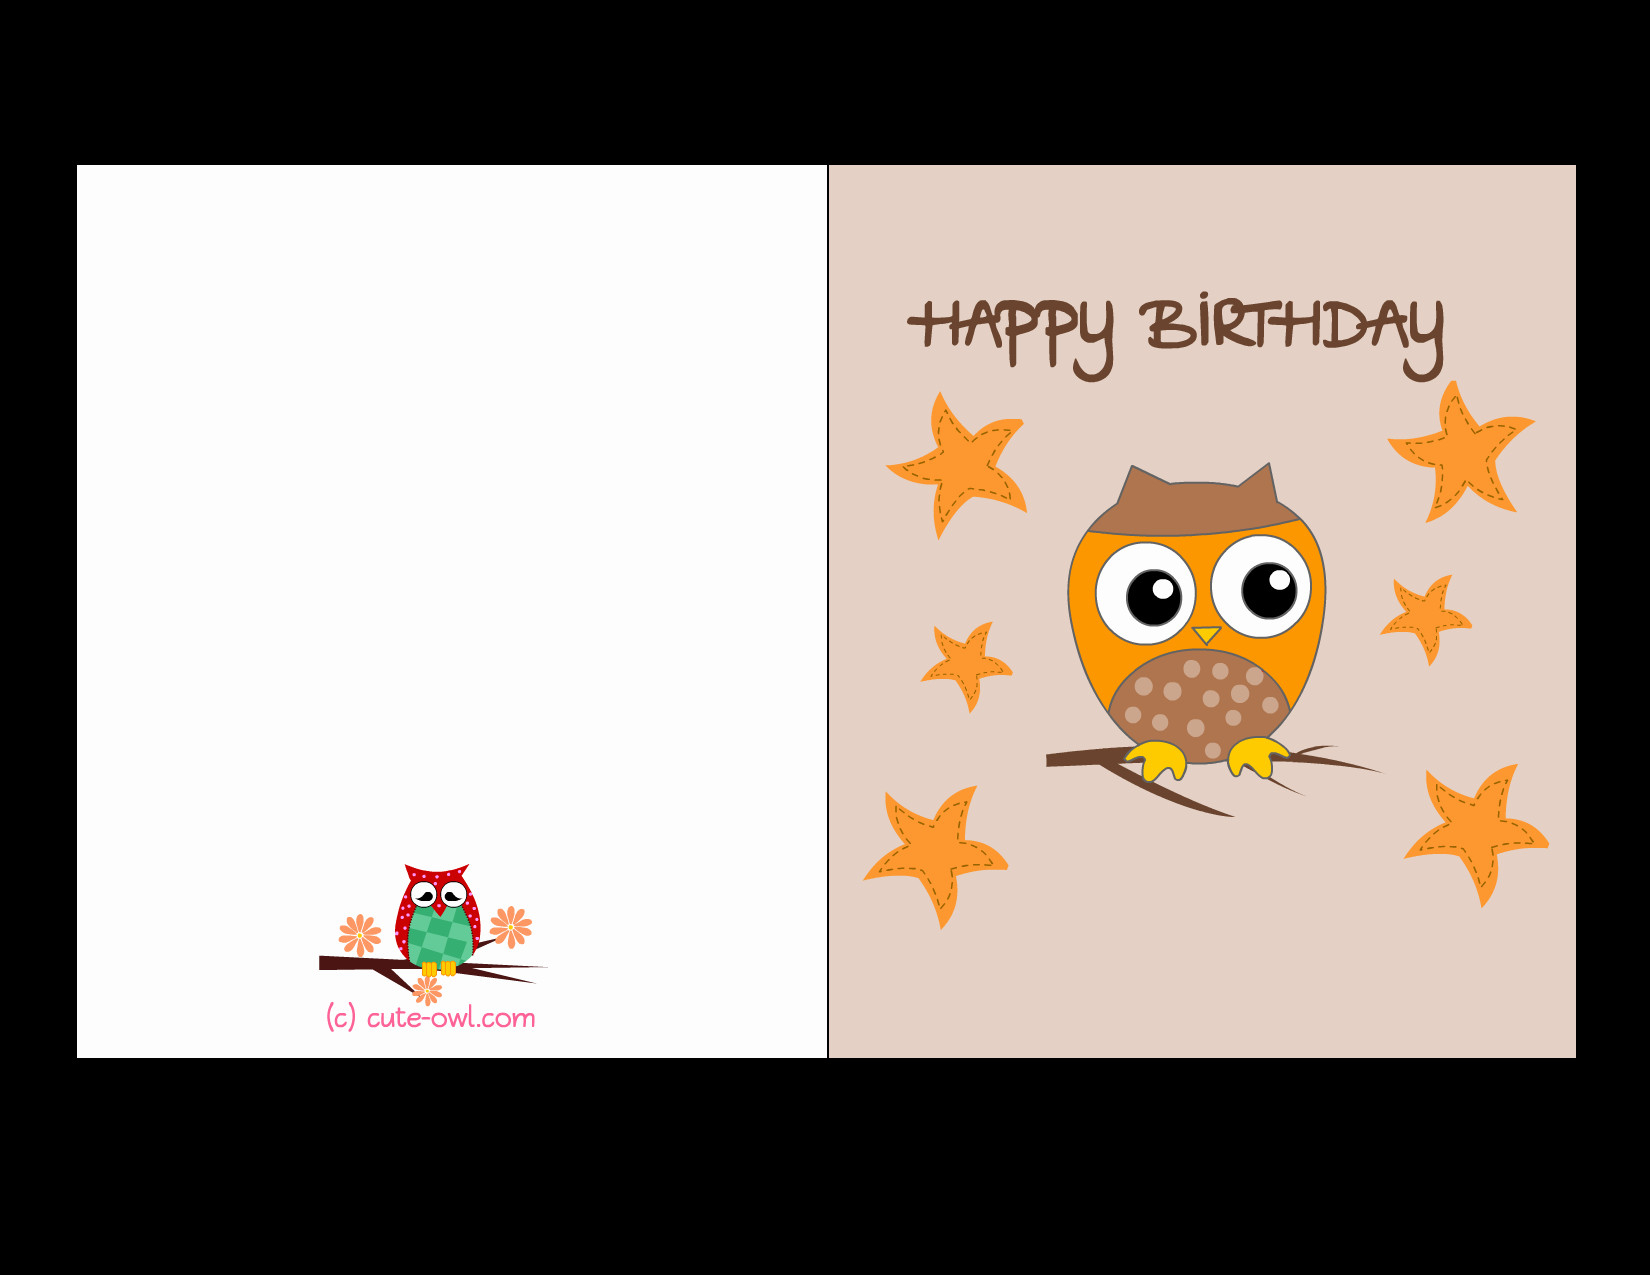 Free Printable Funny Birthday Cards For Him Inspirational Funniest - Free Printable Funny Birthday Cards For Coworkers